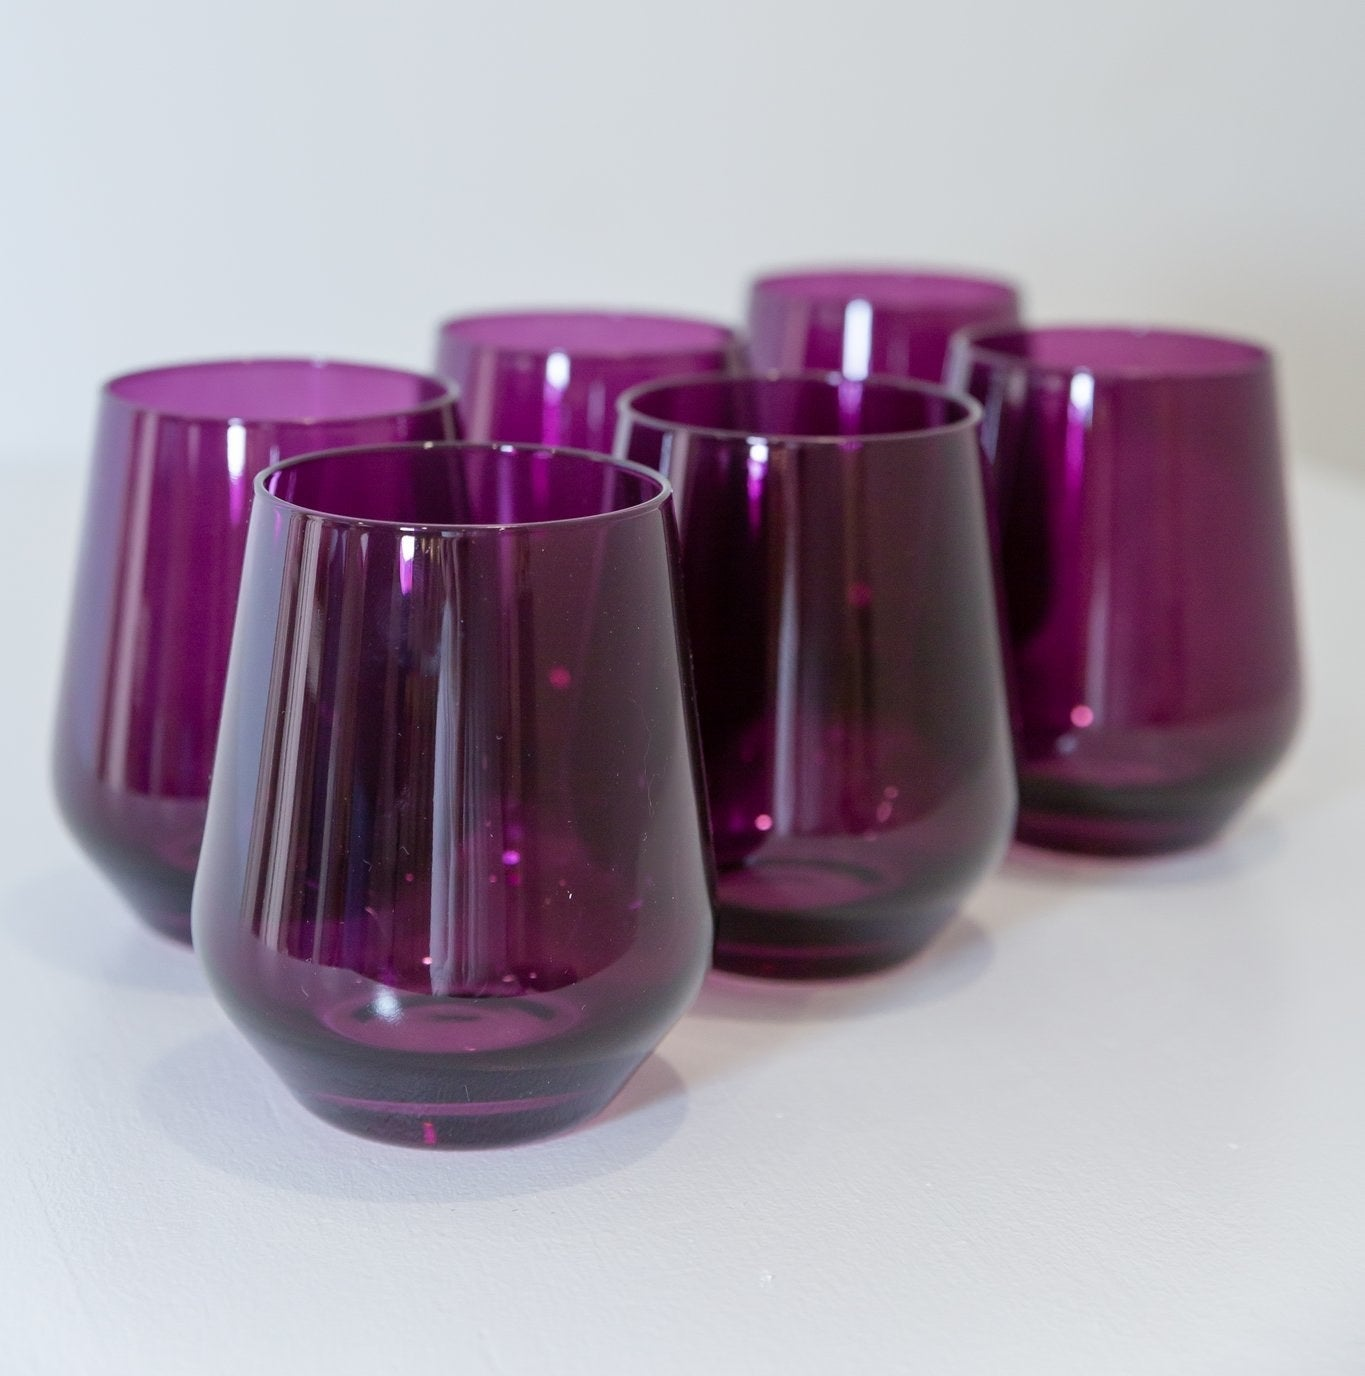 A set of six stemless wine glasses in a dark purple color